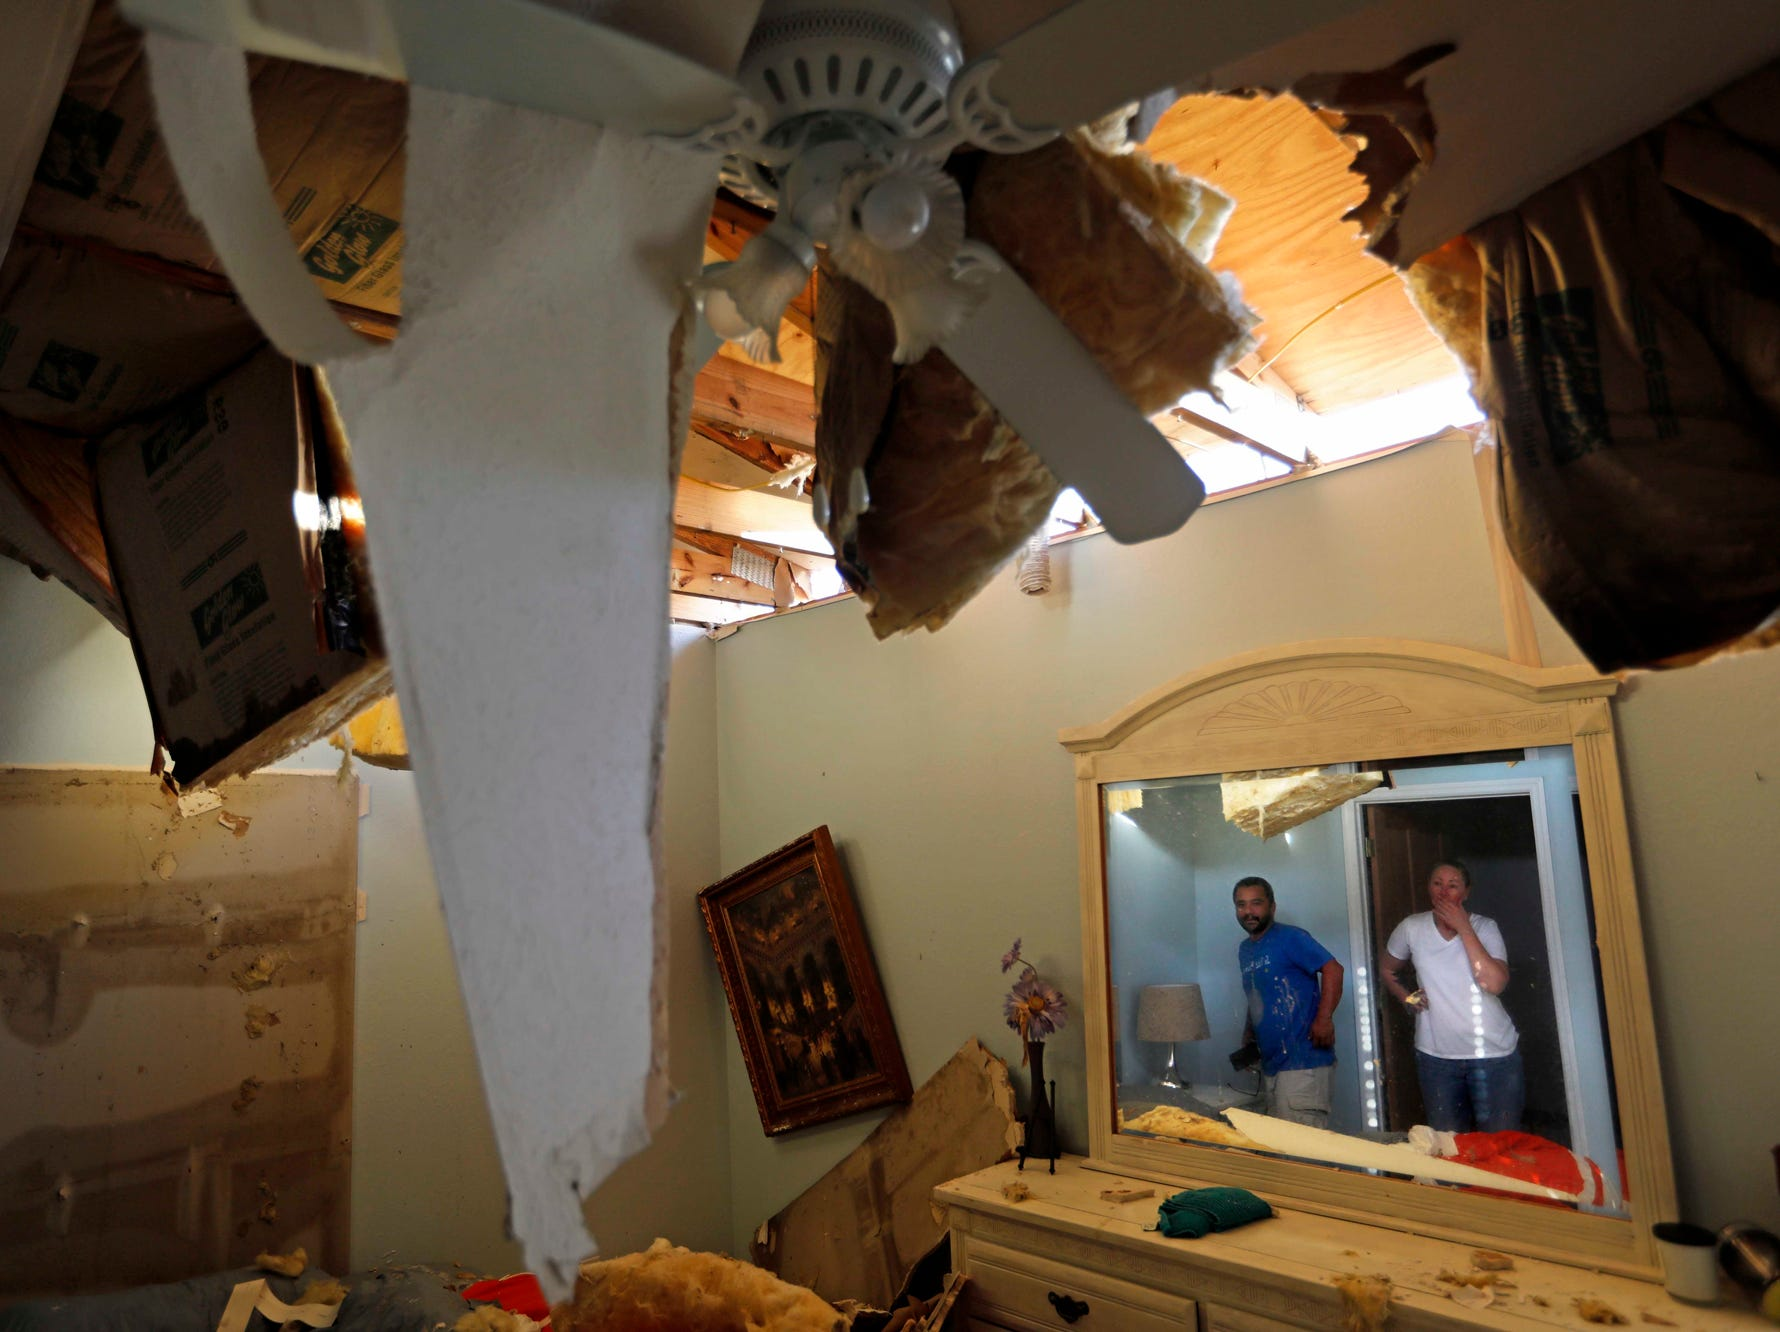 Samantha, right, and Rudy Martinez, survey the damage as they return home for the first time since Hurricane Michael hit Mexico Beach, Fla., Tuesday, Oct. 16, 2018. (AP Photo/David Goldman)